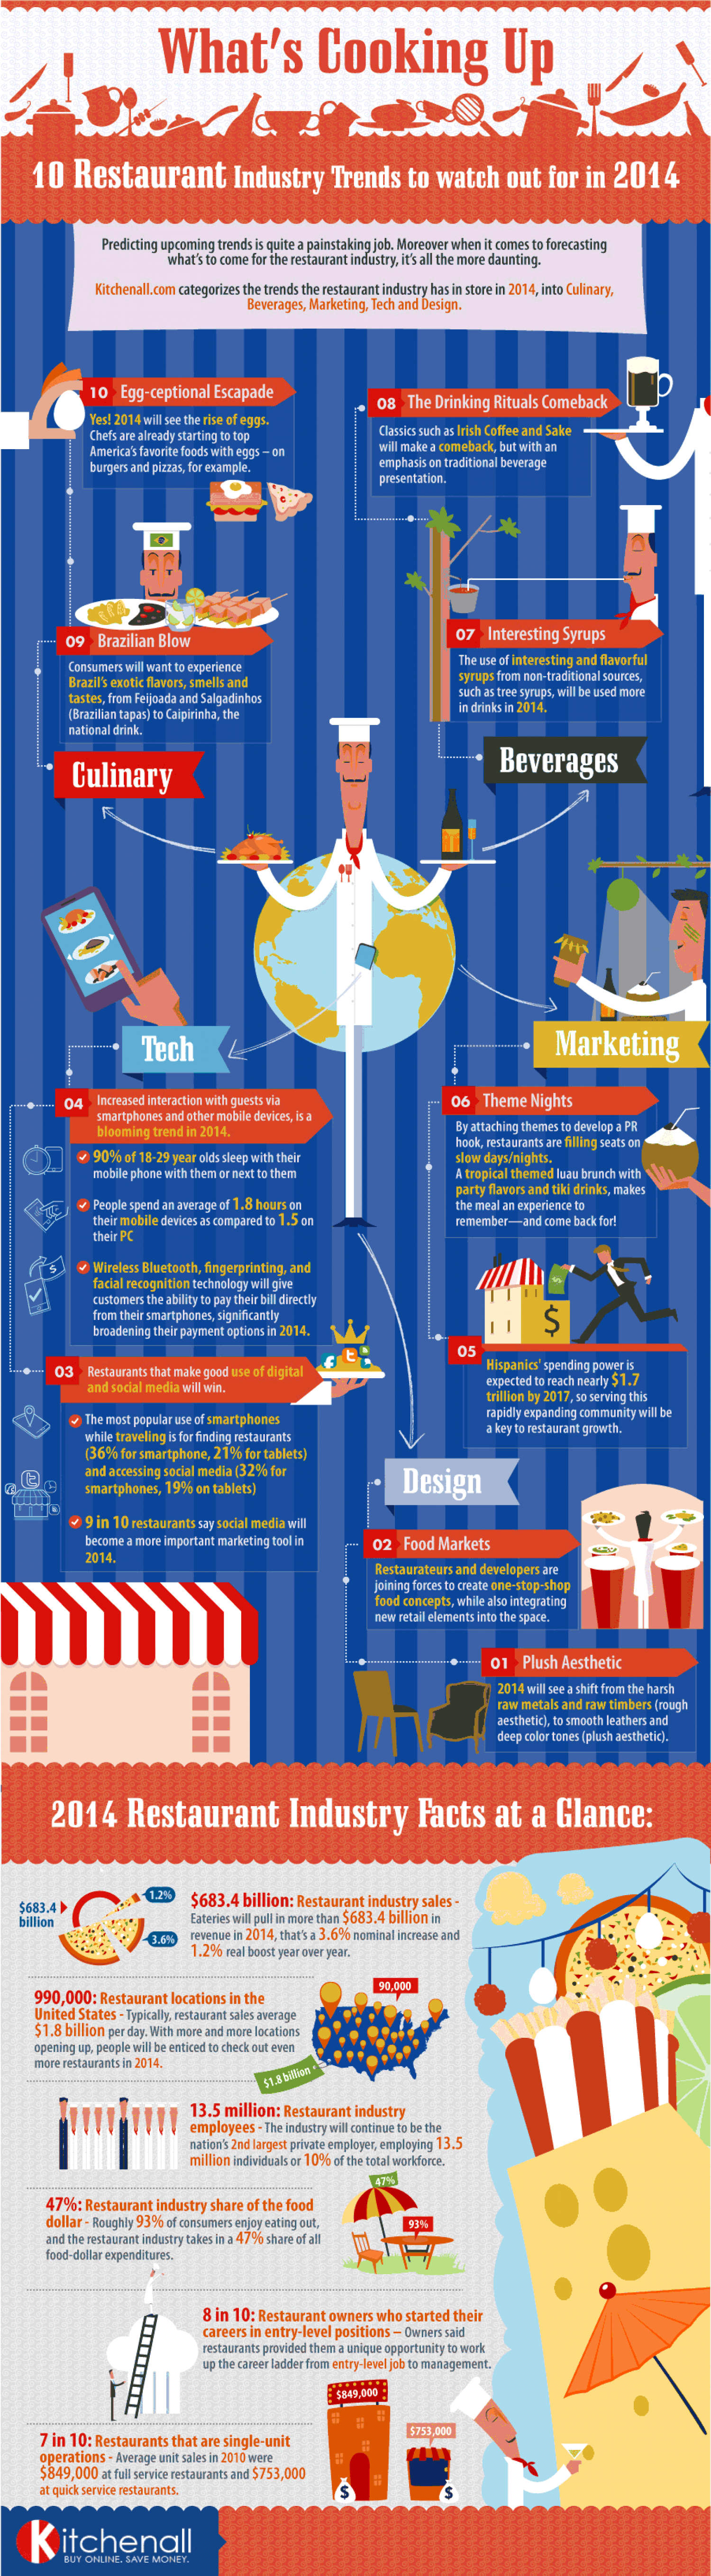 10 Restaurant Industry Trends to Watch Out For in 2014 Infographic